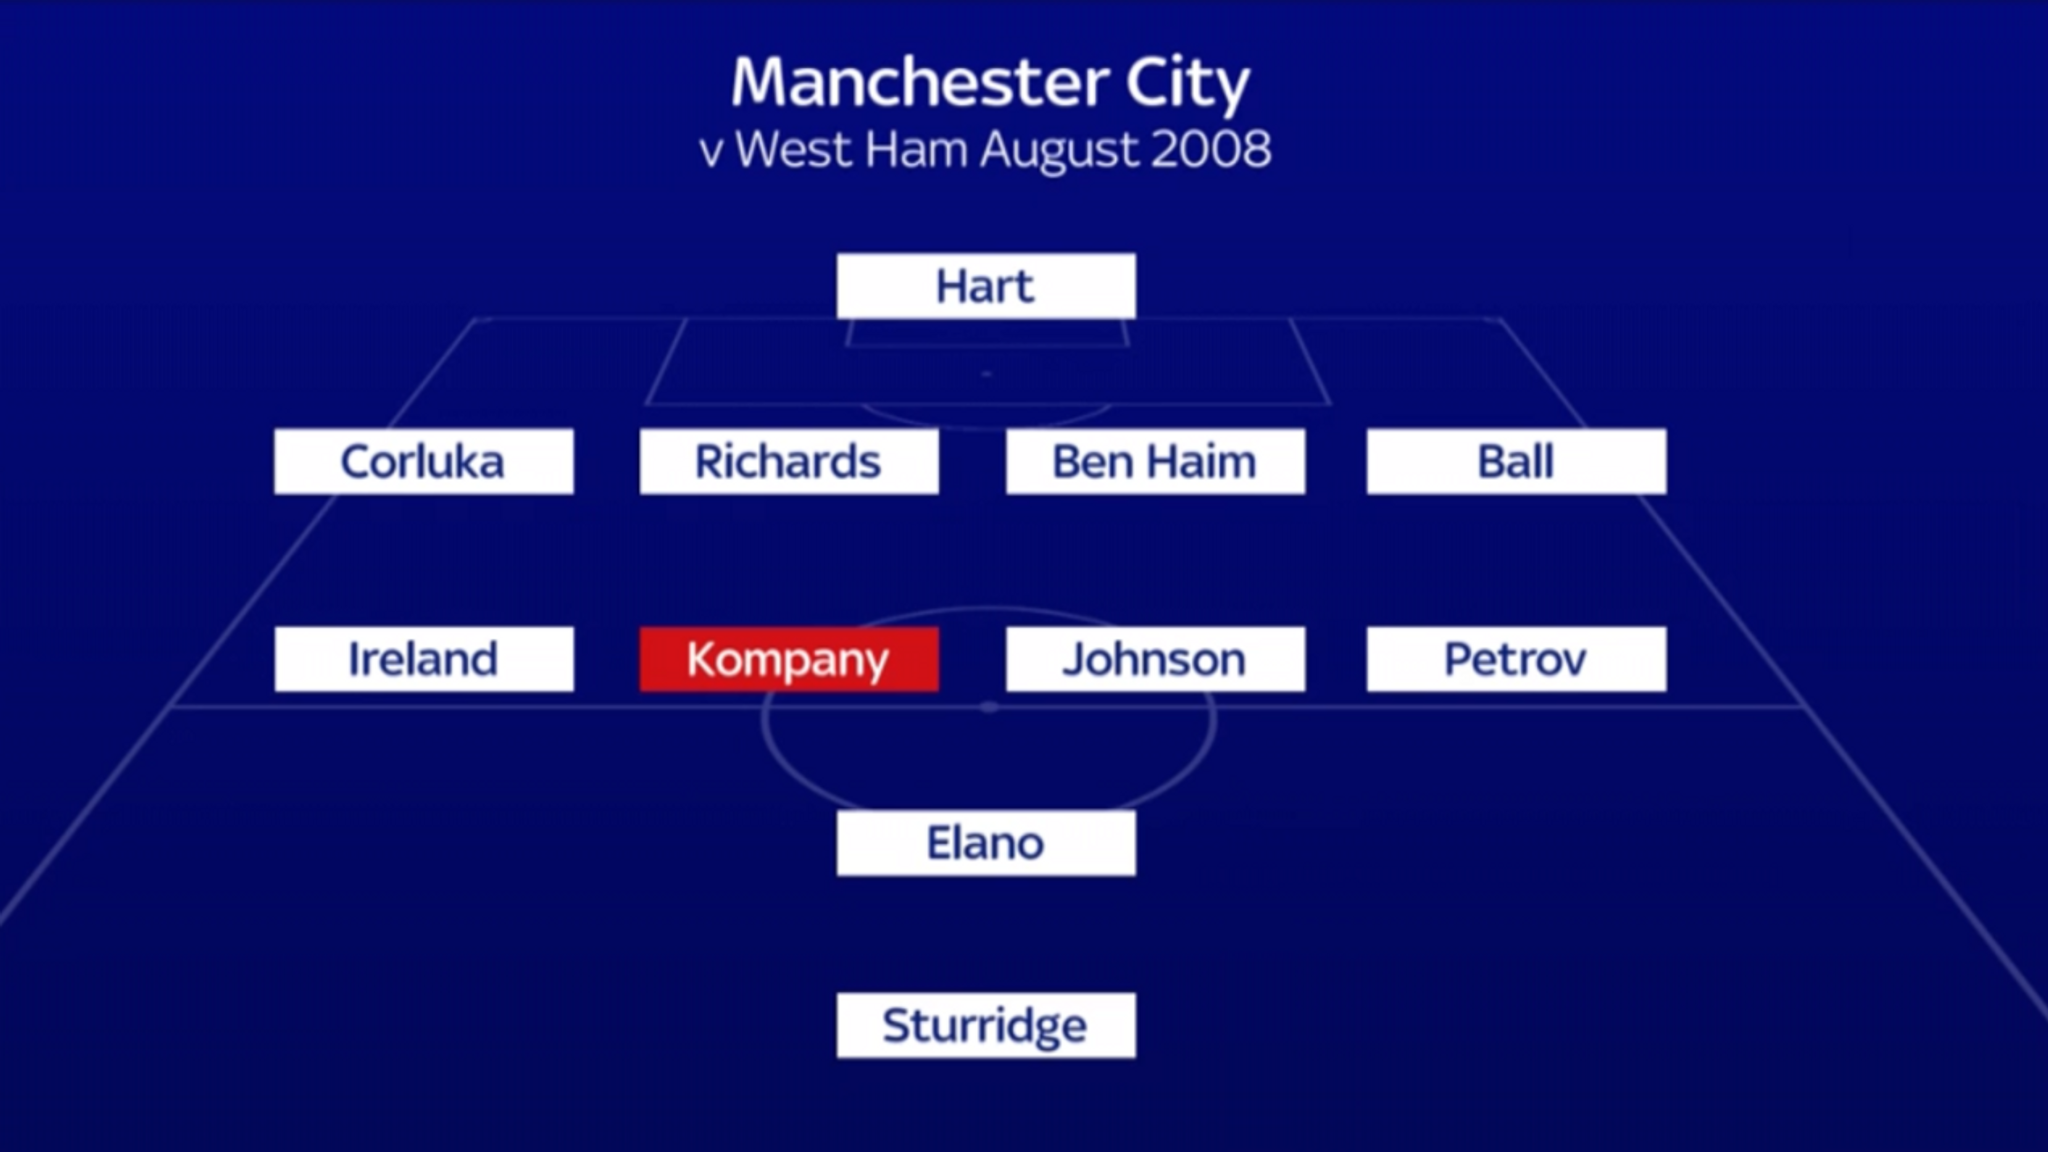 Vincent Kompany leaves Manchester City after 11 years